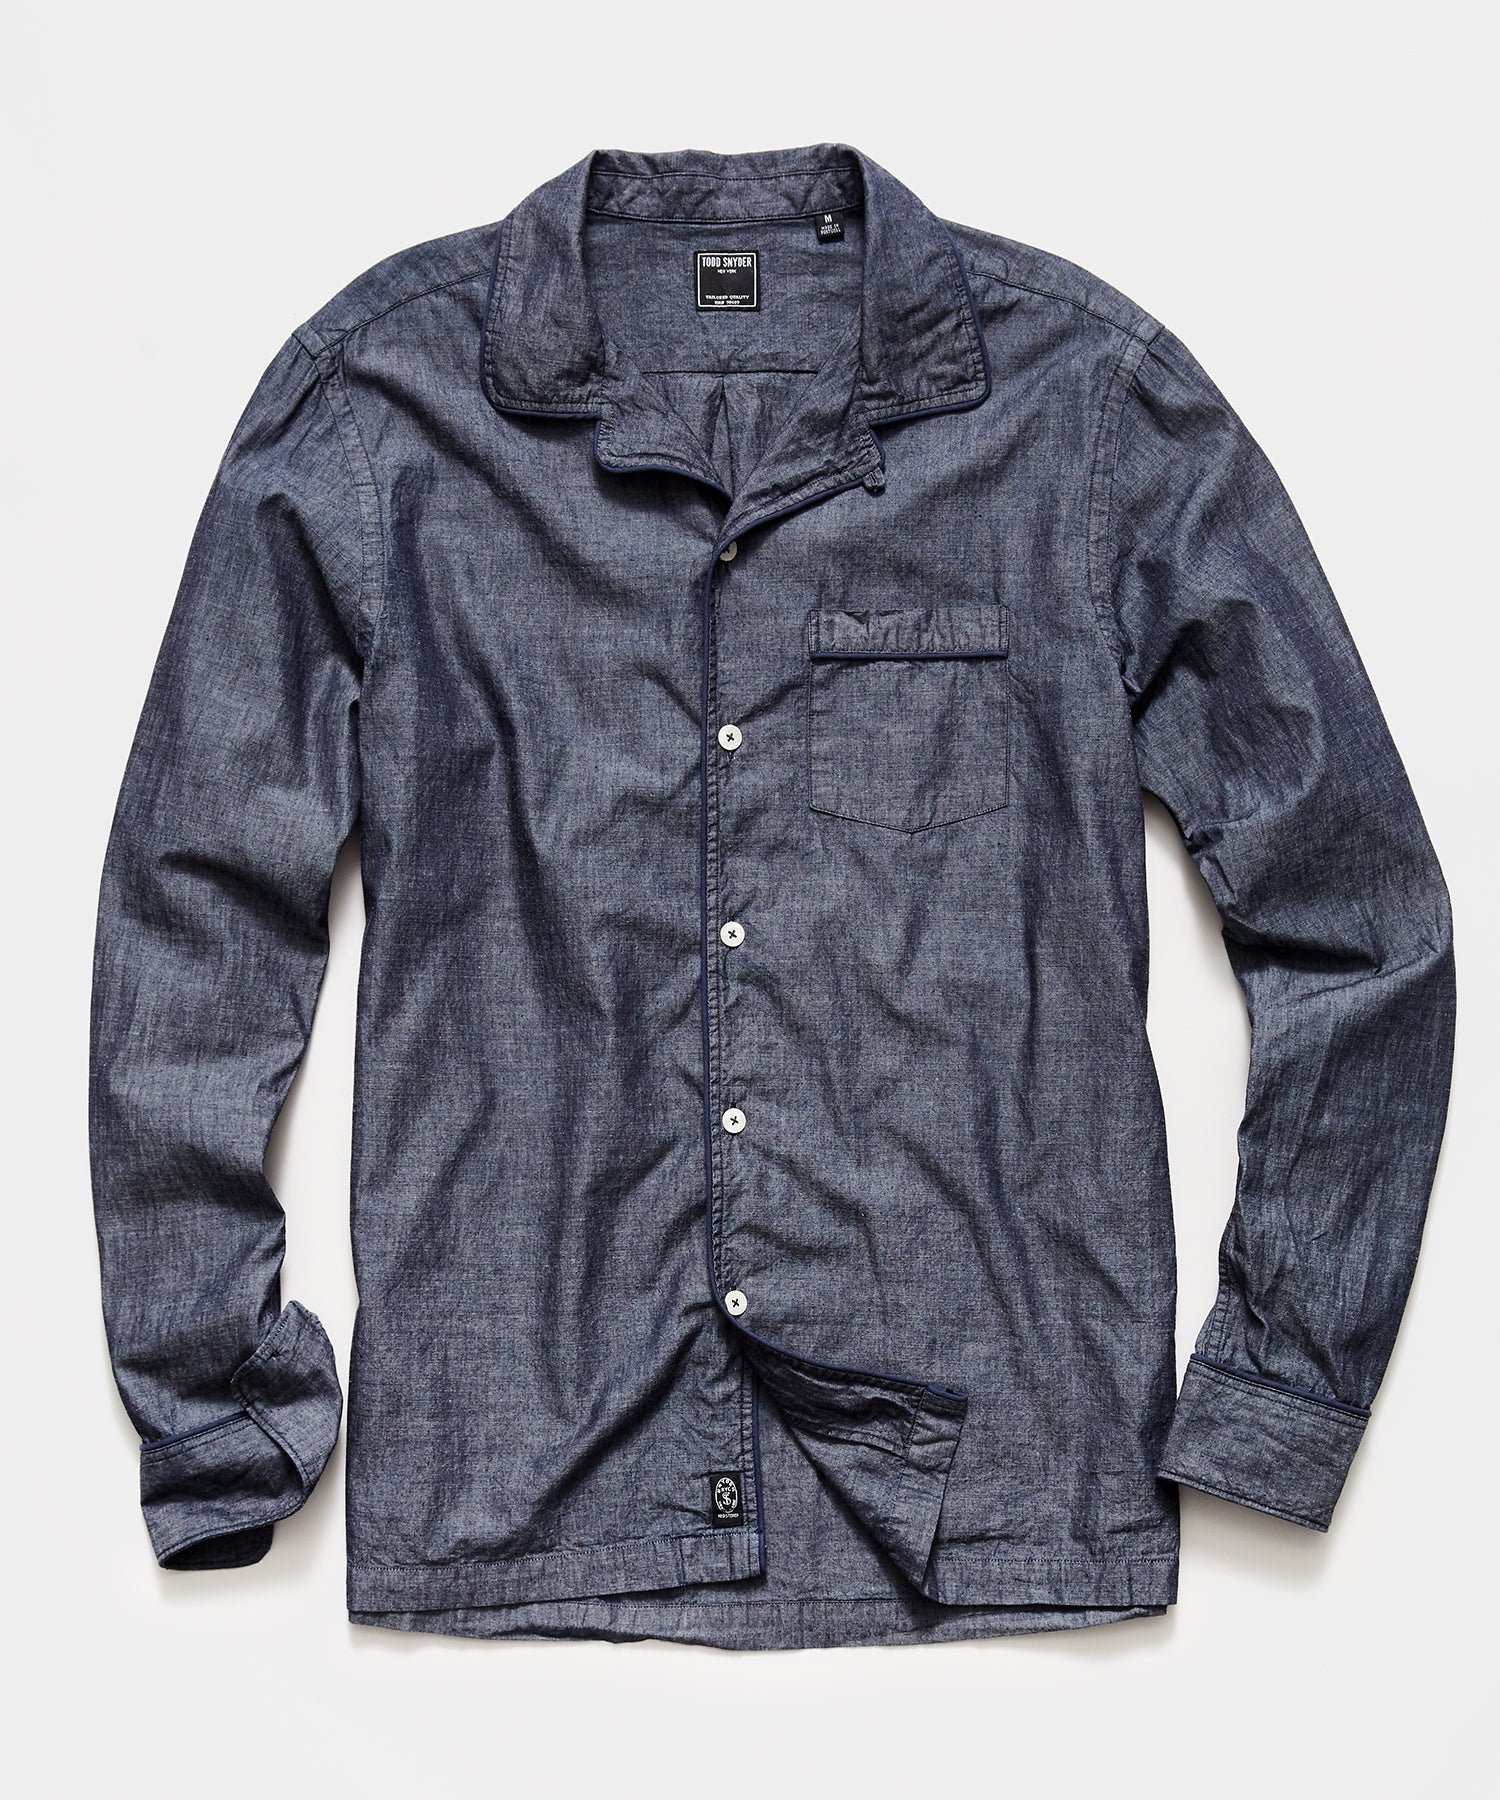 Tipped Navy Chambray Camp Collar Shirt in Indigo